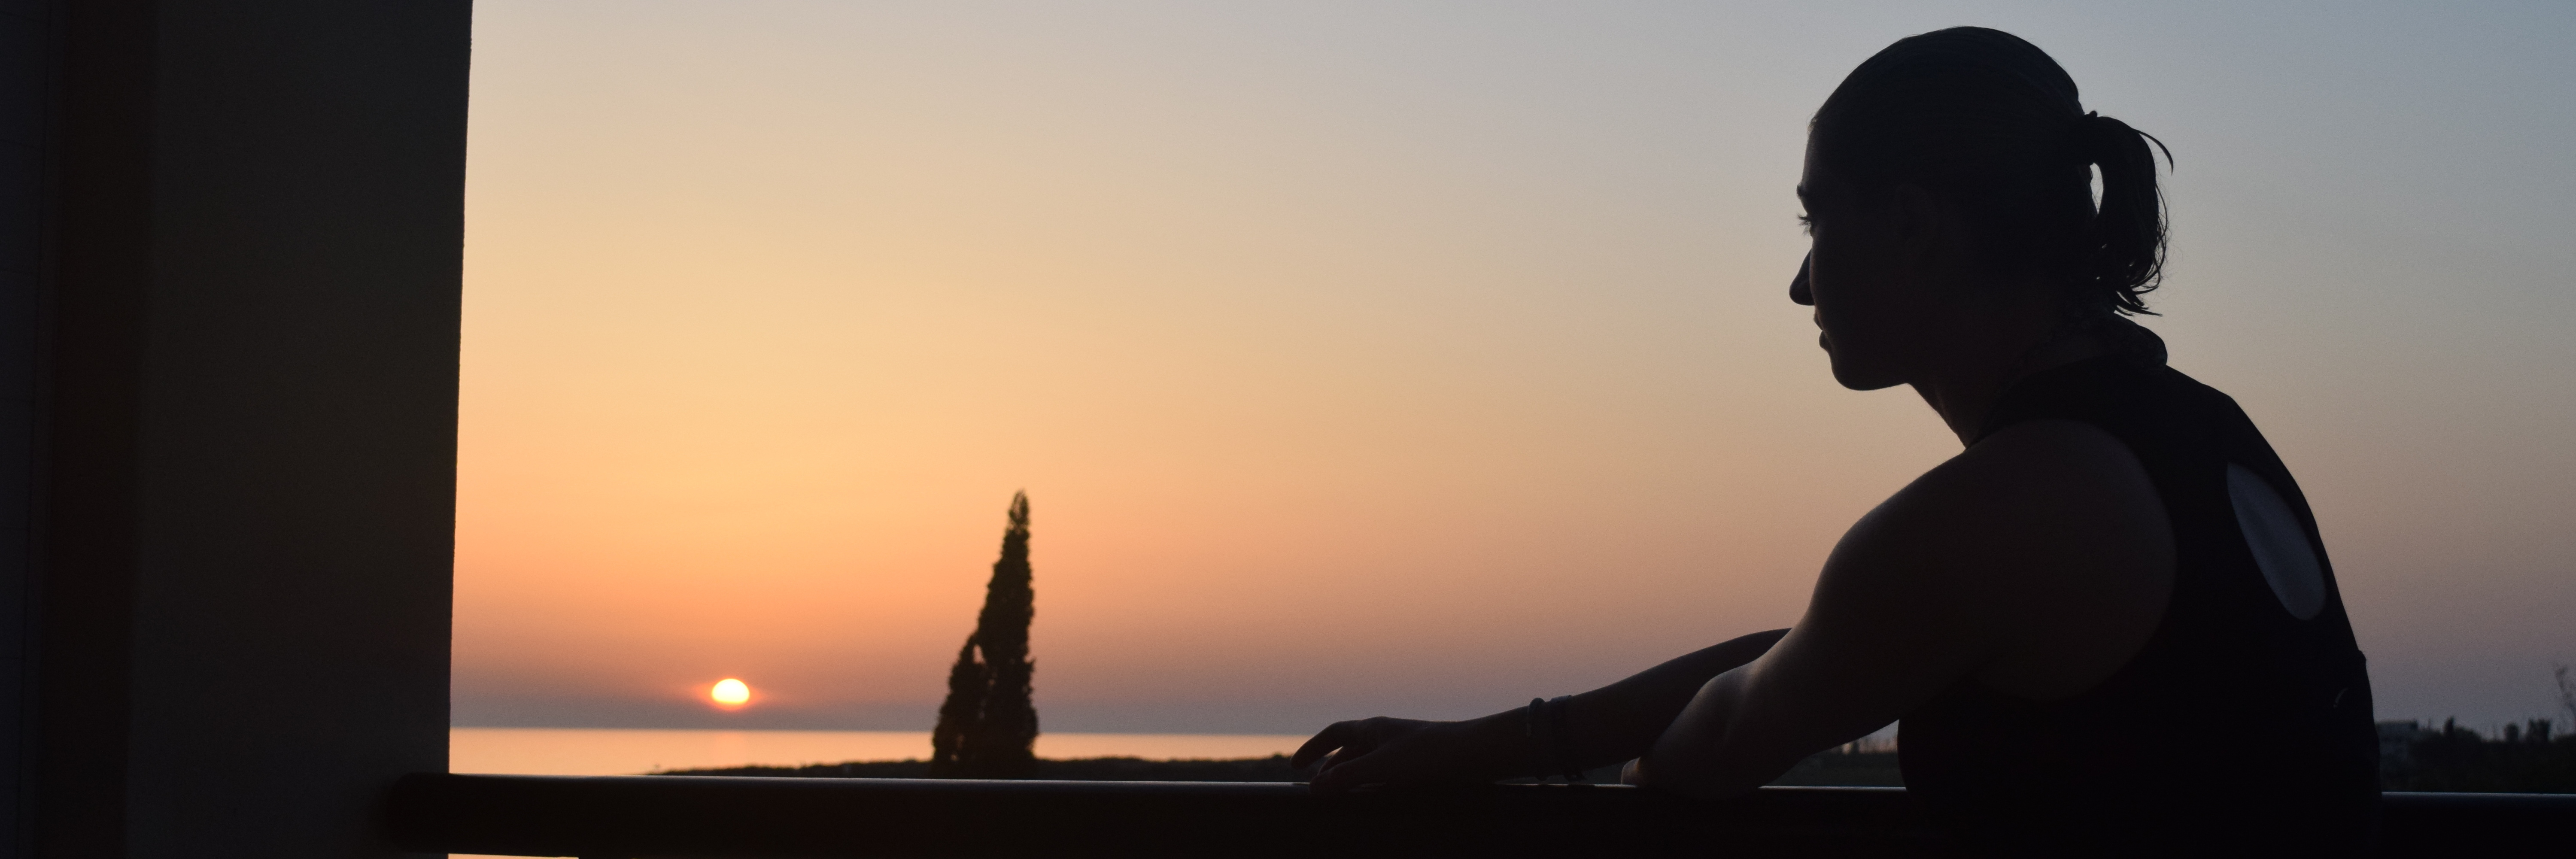 silhouette of a woman standing on a balcony overlooking a lake at sunset